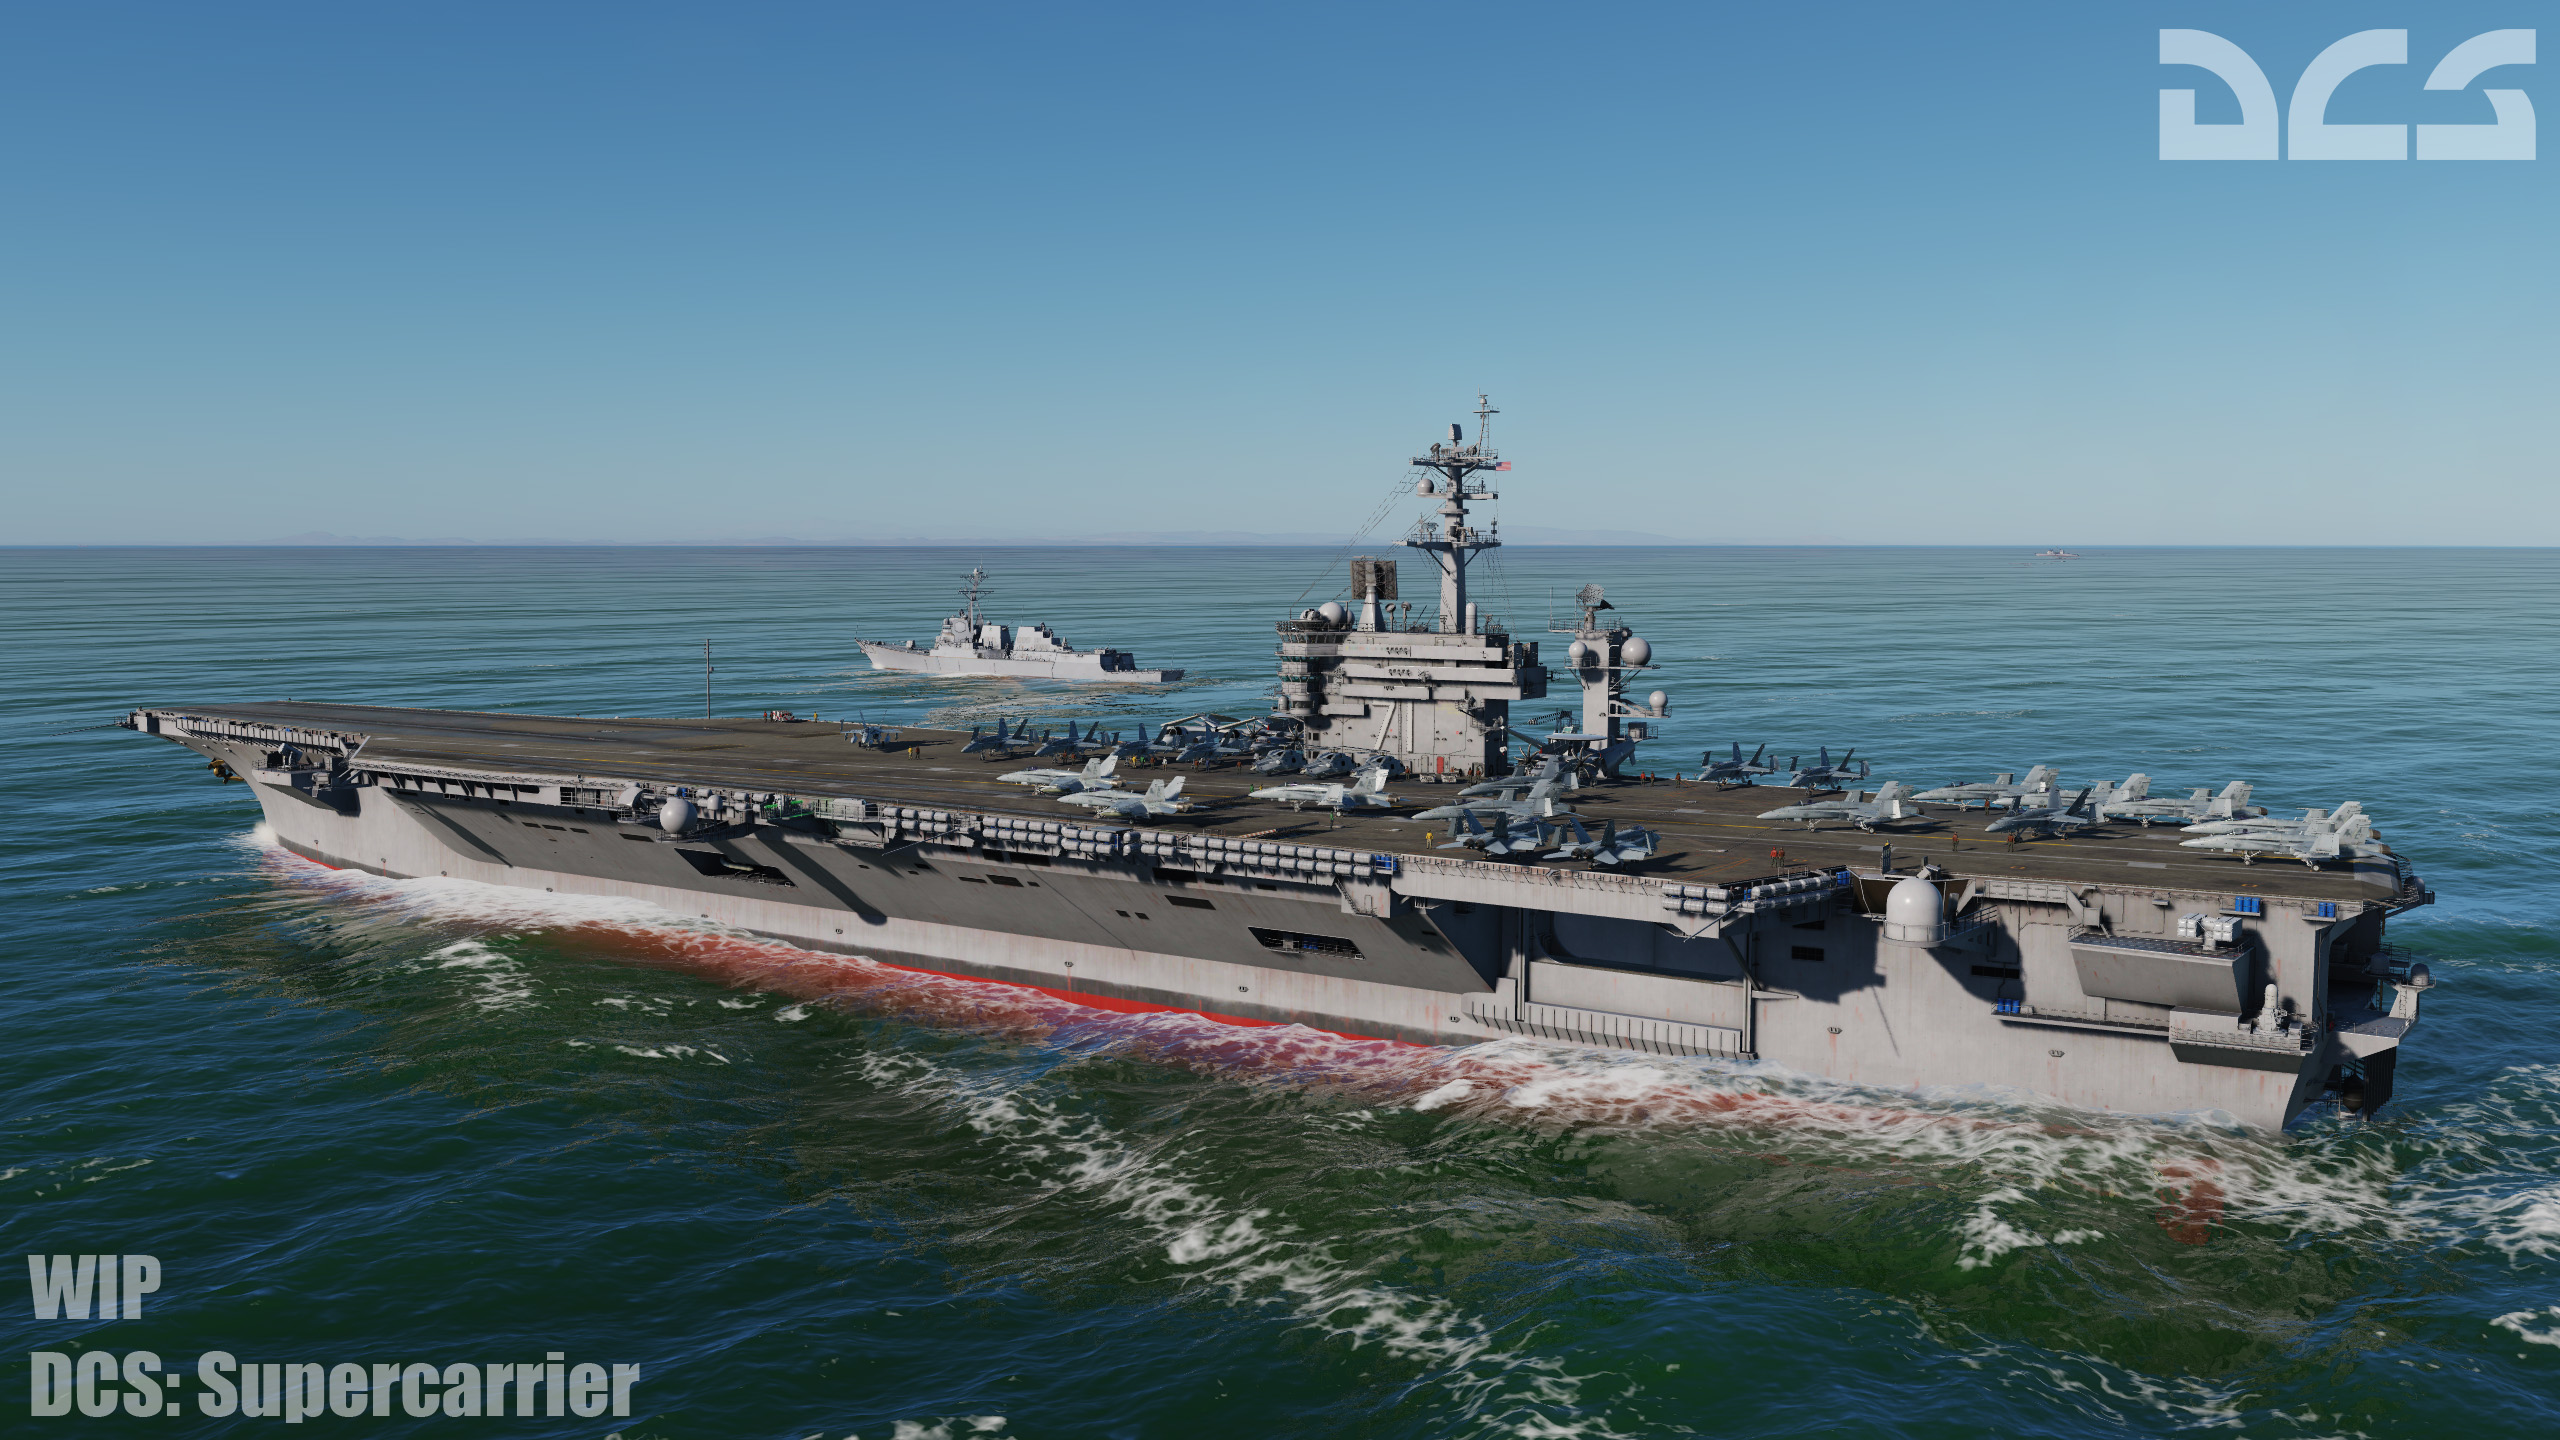 www.digitalcombatsimulator.com/upload/iblock/4aa/DCS-Supercarrier_01.jpg